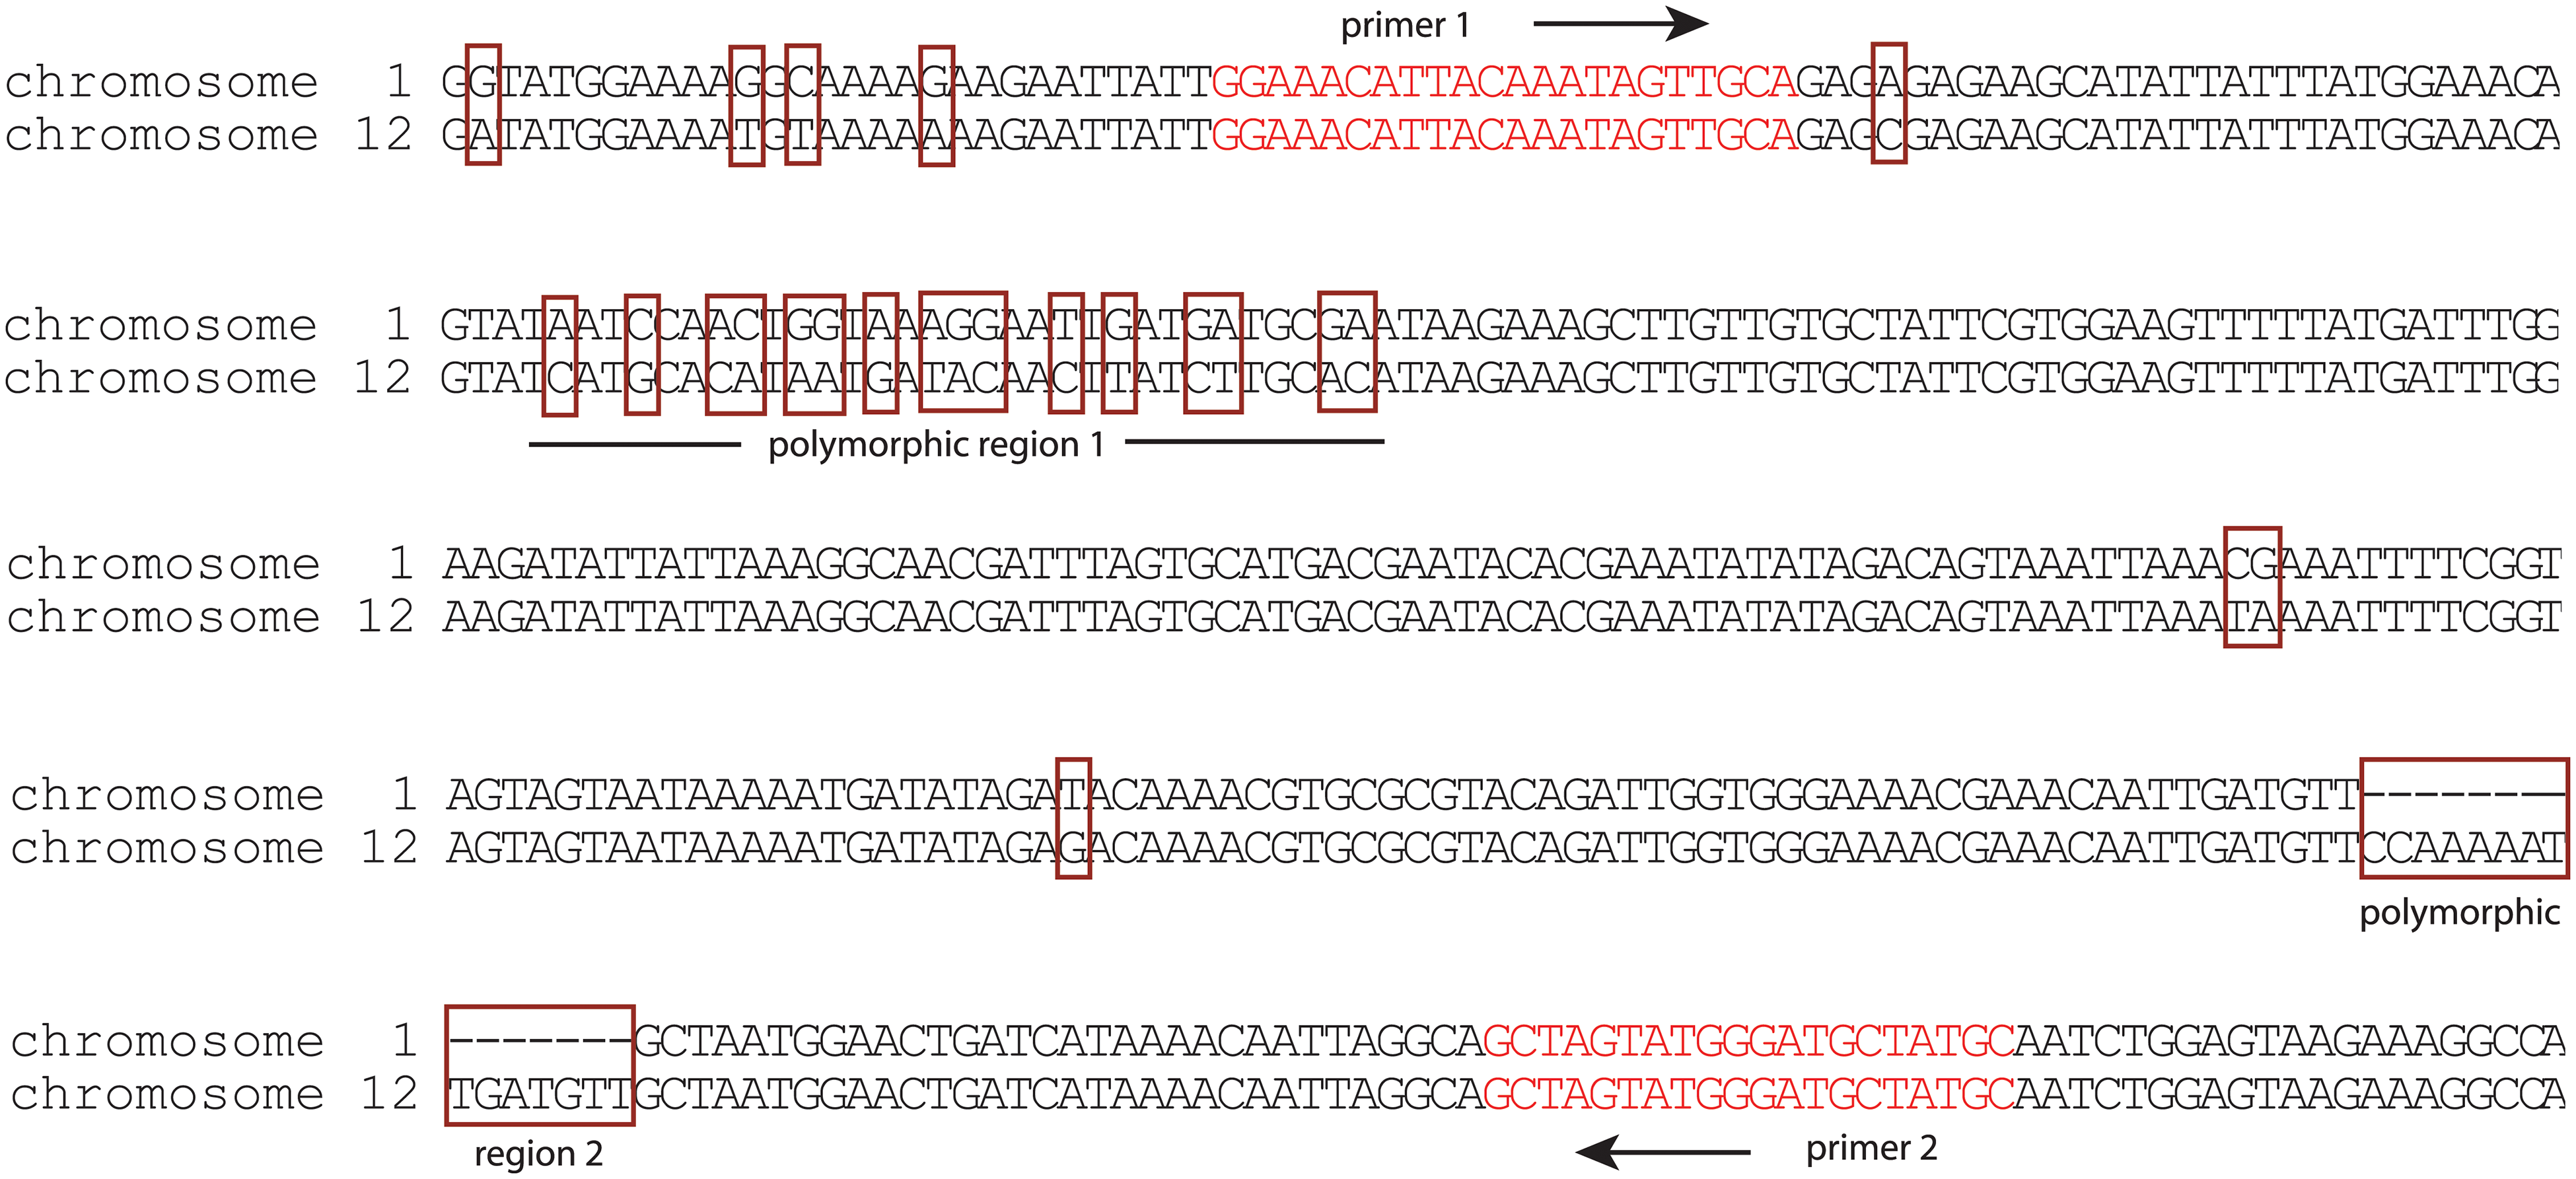 Induction of <i>var2csa</i> in HB3 specifically activates the locus on chromosome 12.